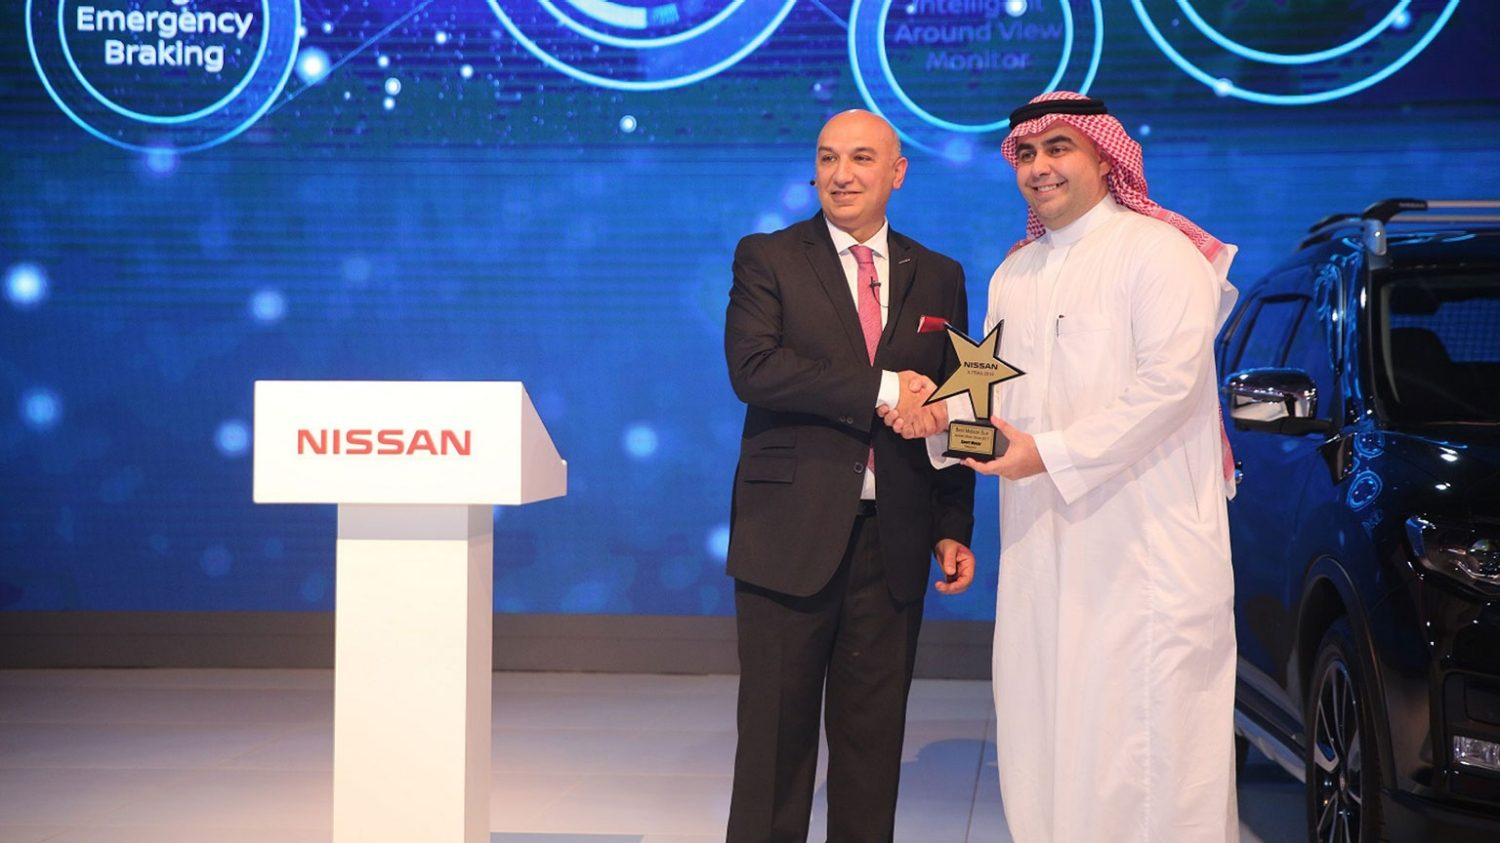 X-Trail Wins the Best Crossover Car During the Saudi International Motor Show